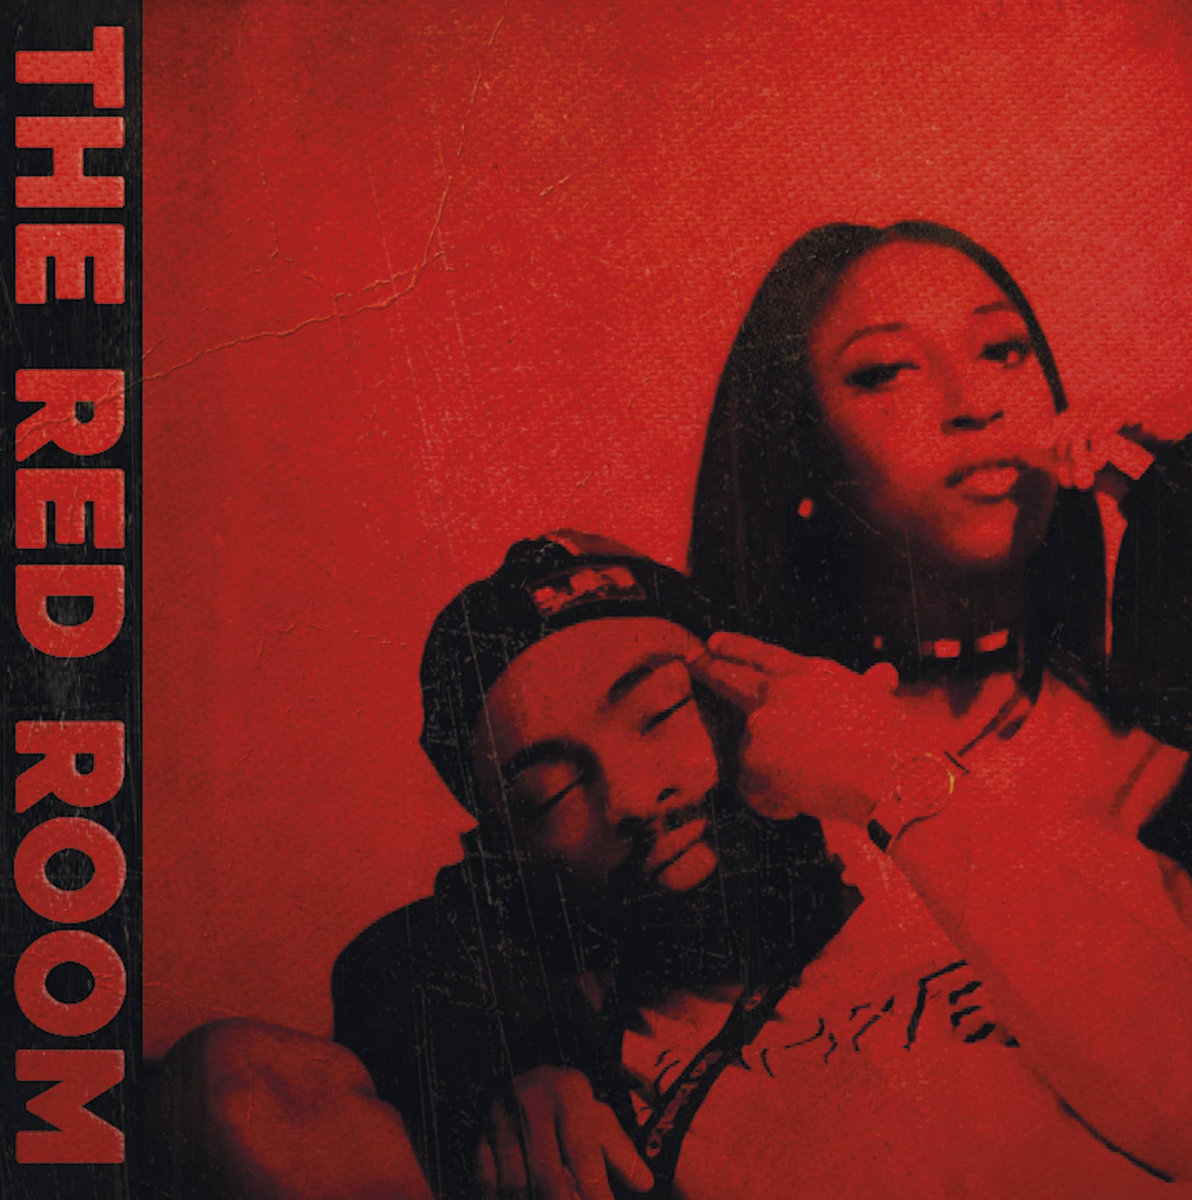 The Red Room | FXCK RXP